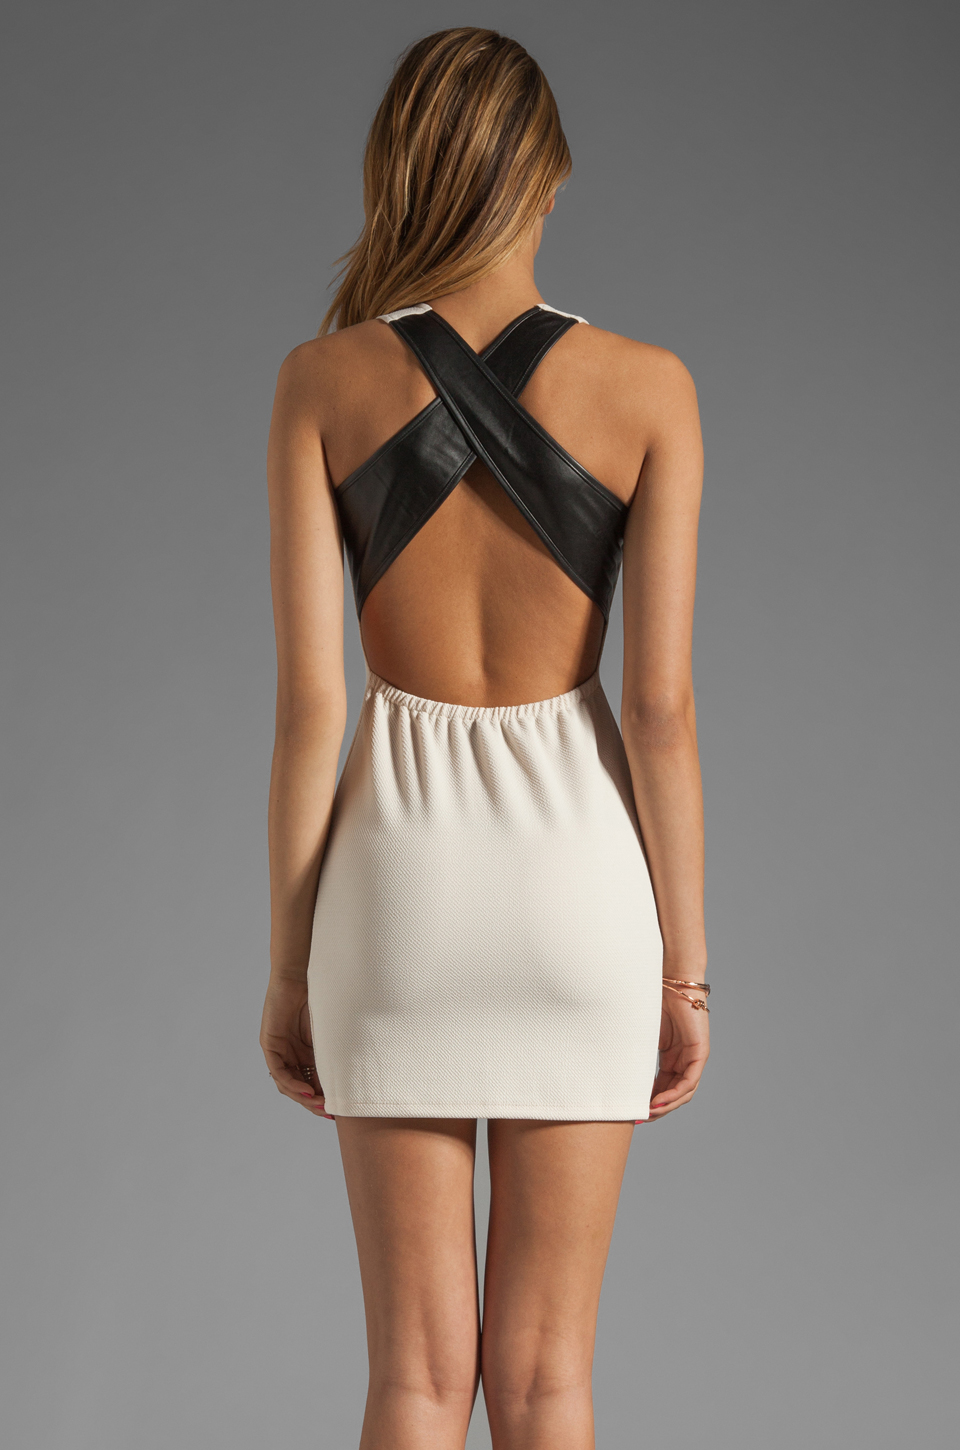 Lovers + Friends Lovers + Friends Shooting Stars Dress in Cream/Black Faux Leather